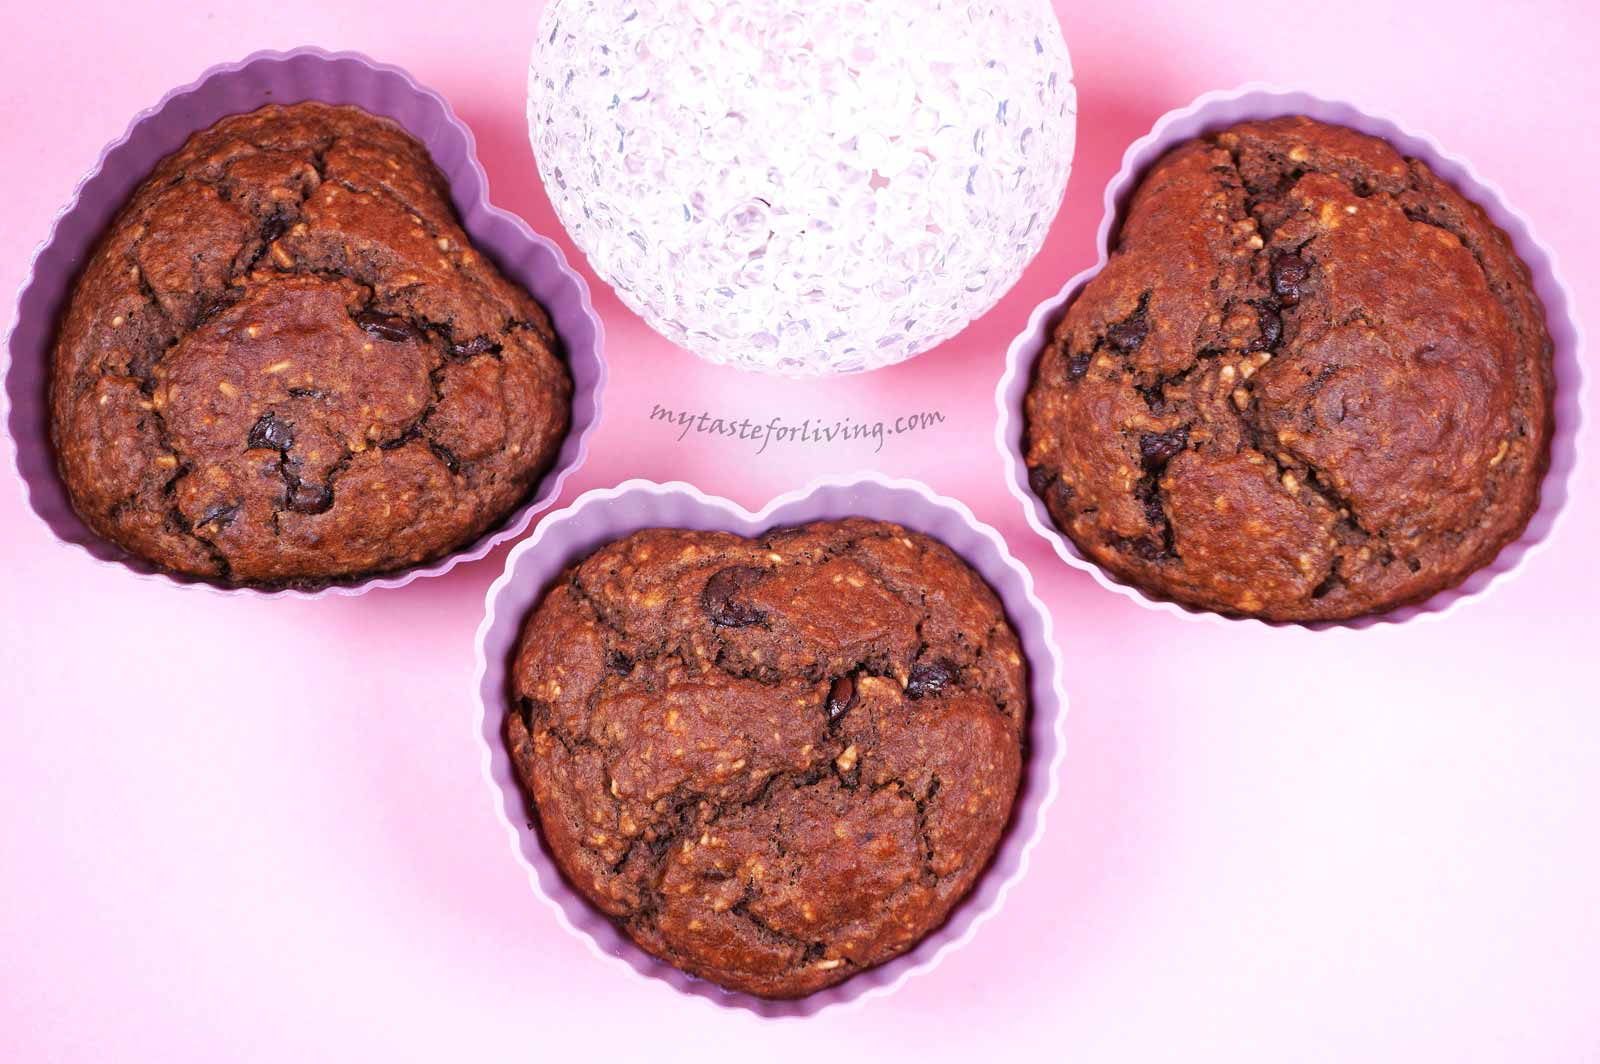 Chocolate muffins made by old fashioned rolled oats, banana and yogurt, no flour and no added sugar. Their sweetness comes from the bananas and the chocolate drops in them. You can skip the chocolate and then I recommend you add 2-3 tablespoons of honey or maple syrup.